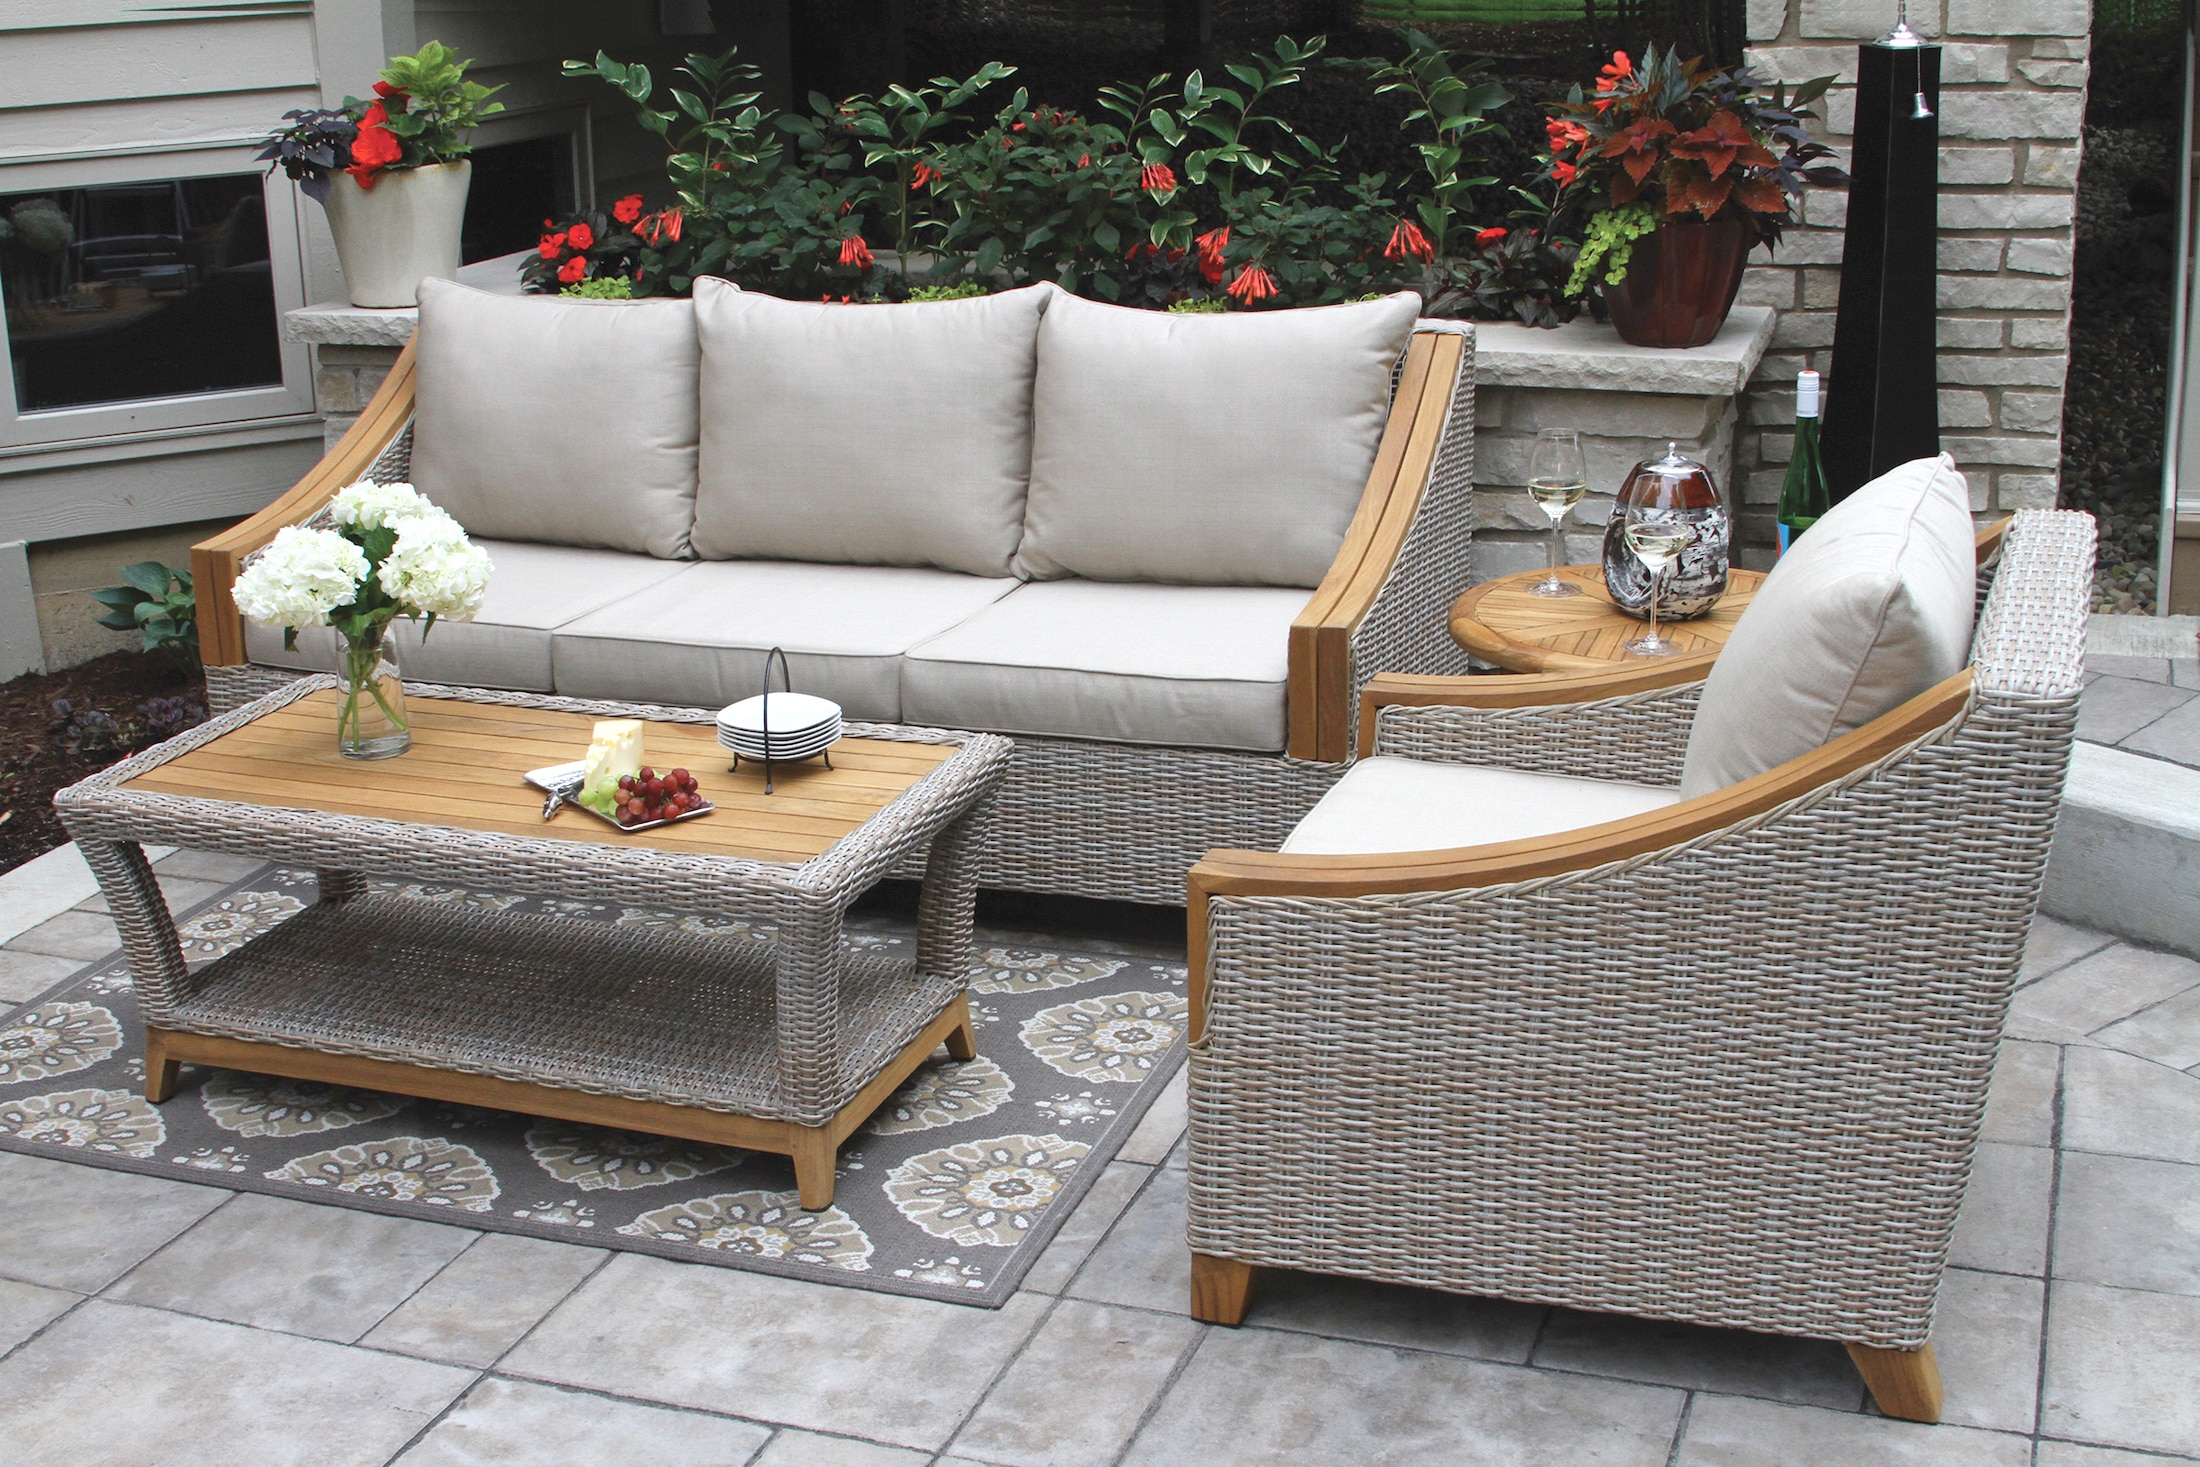 wicker furniture tna7000- wicker u0026 natural teak sofa with sunbrella cushions u0026 pillows HQVJXMZ